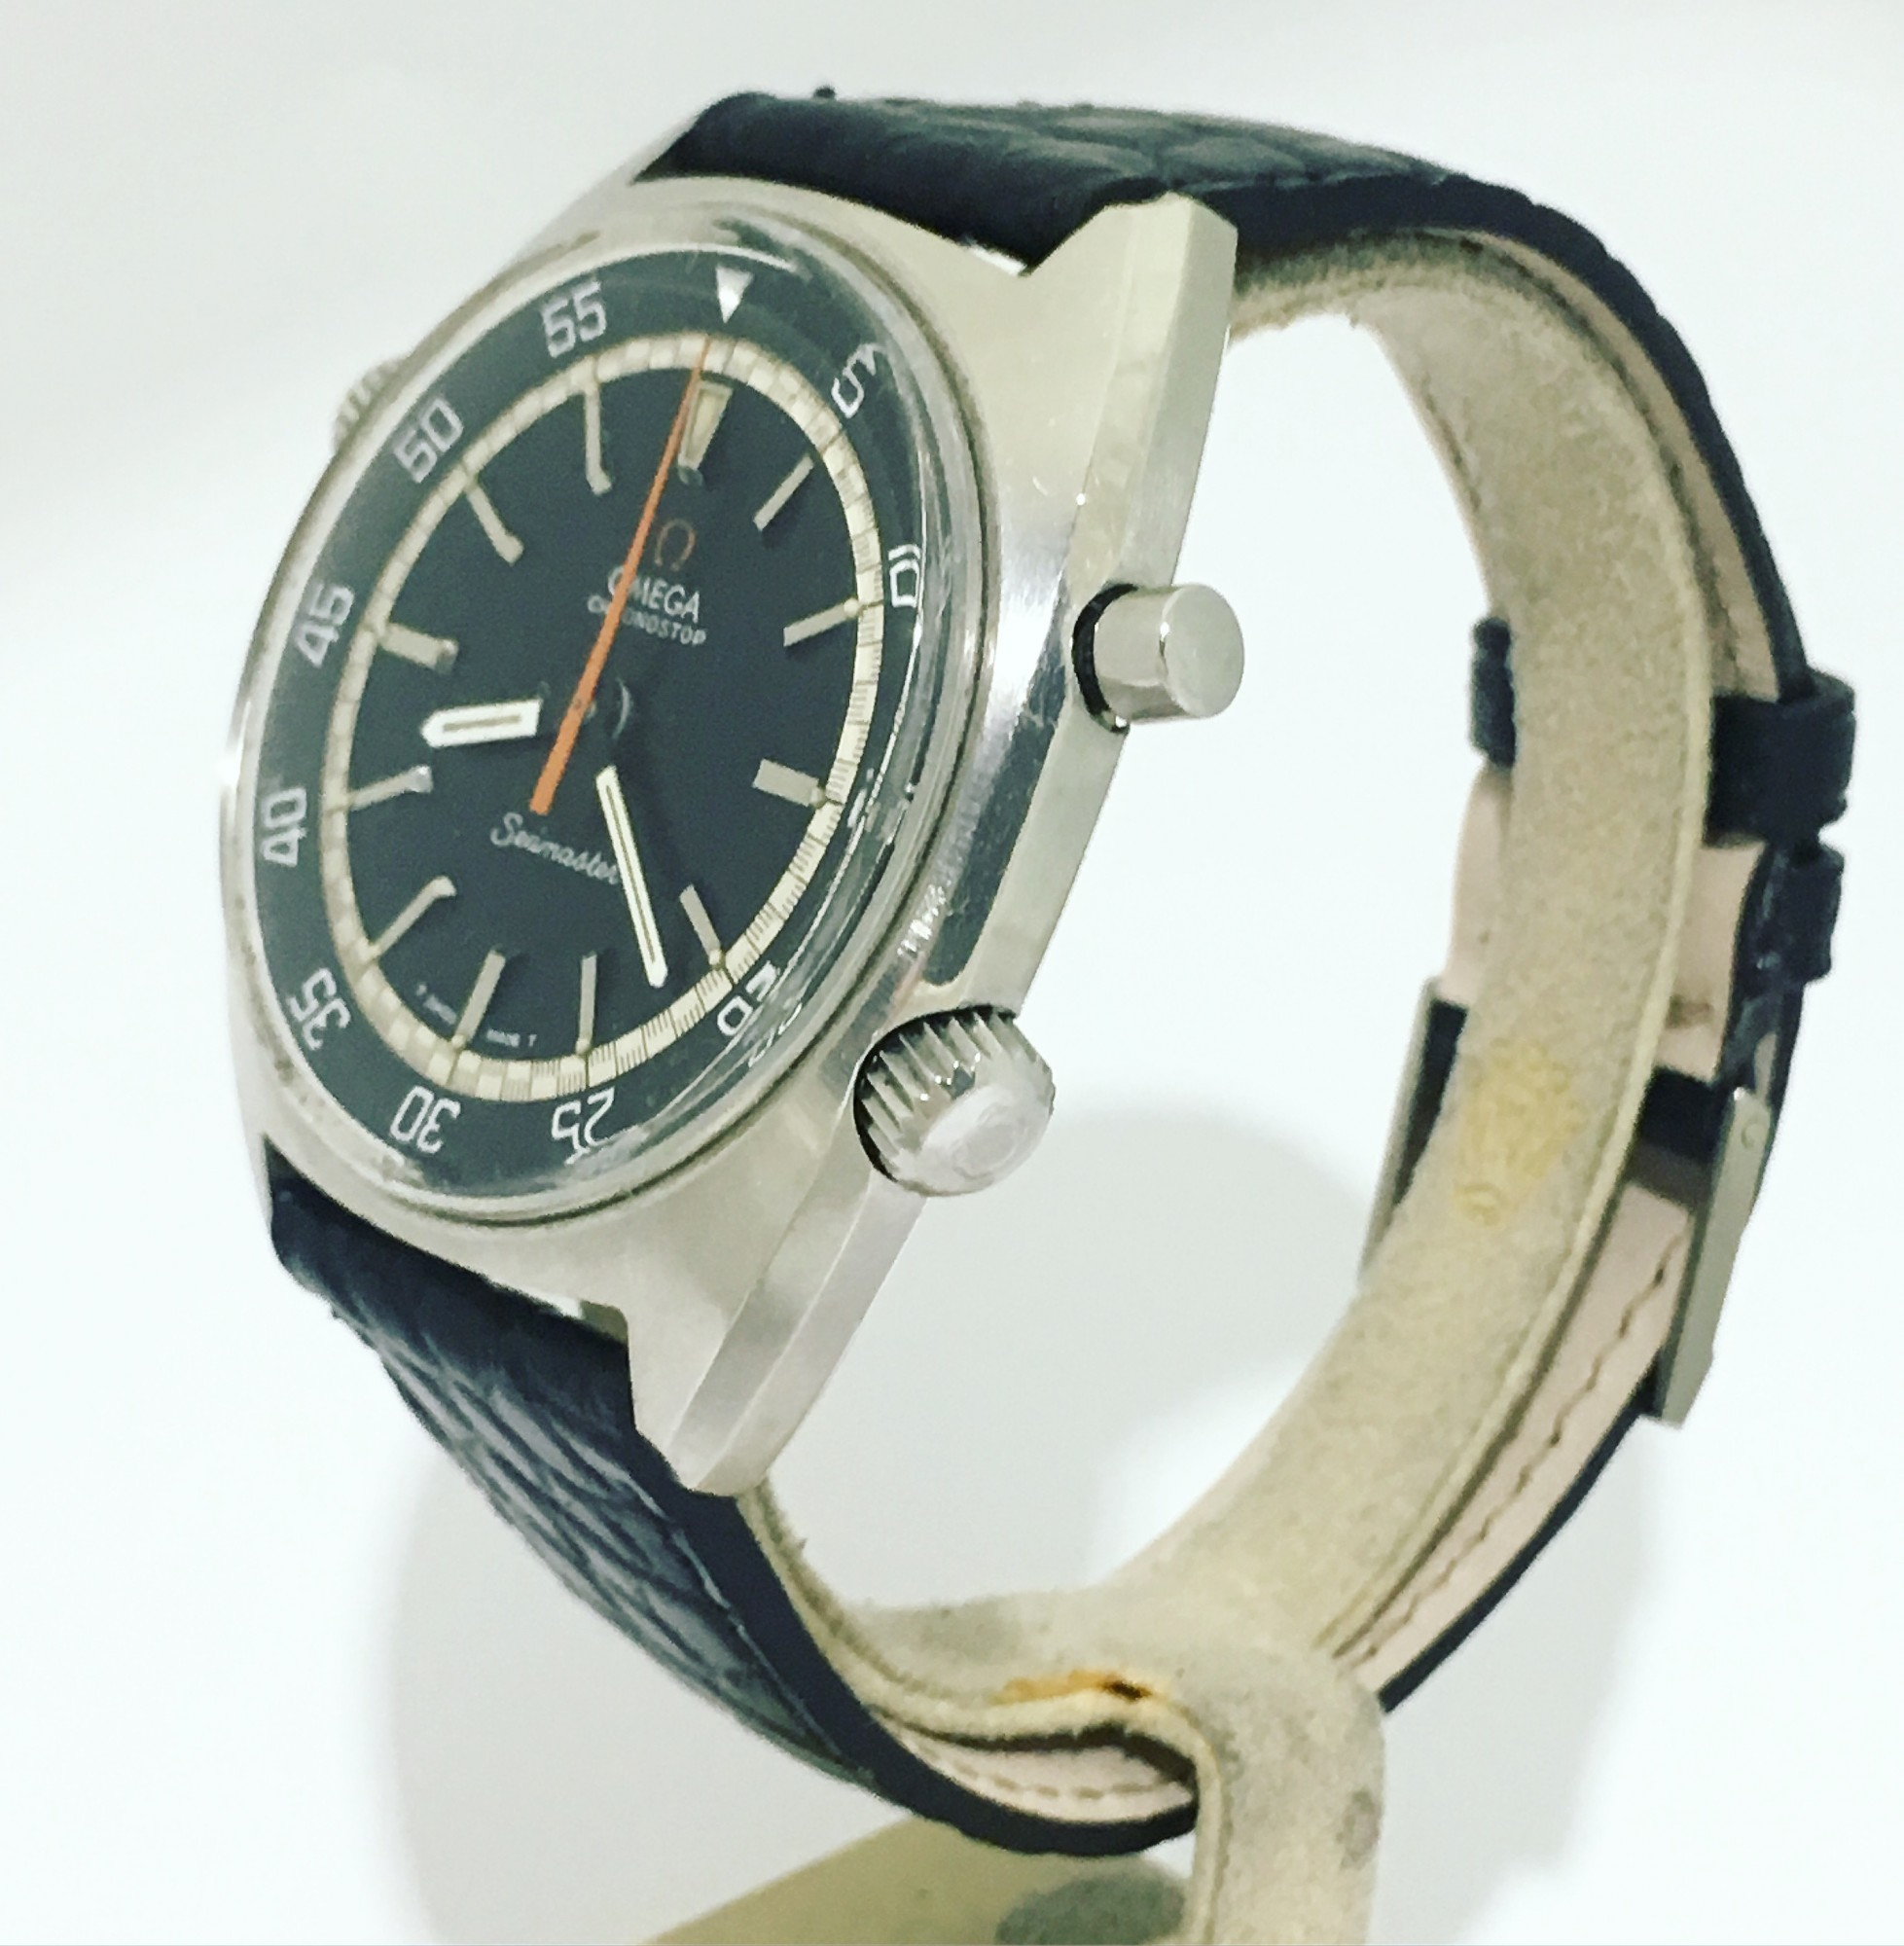 Montre occasion Omega Chronostop Seamaster.